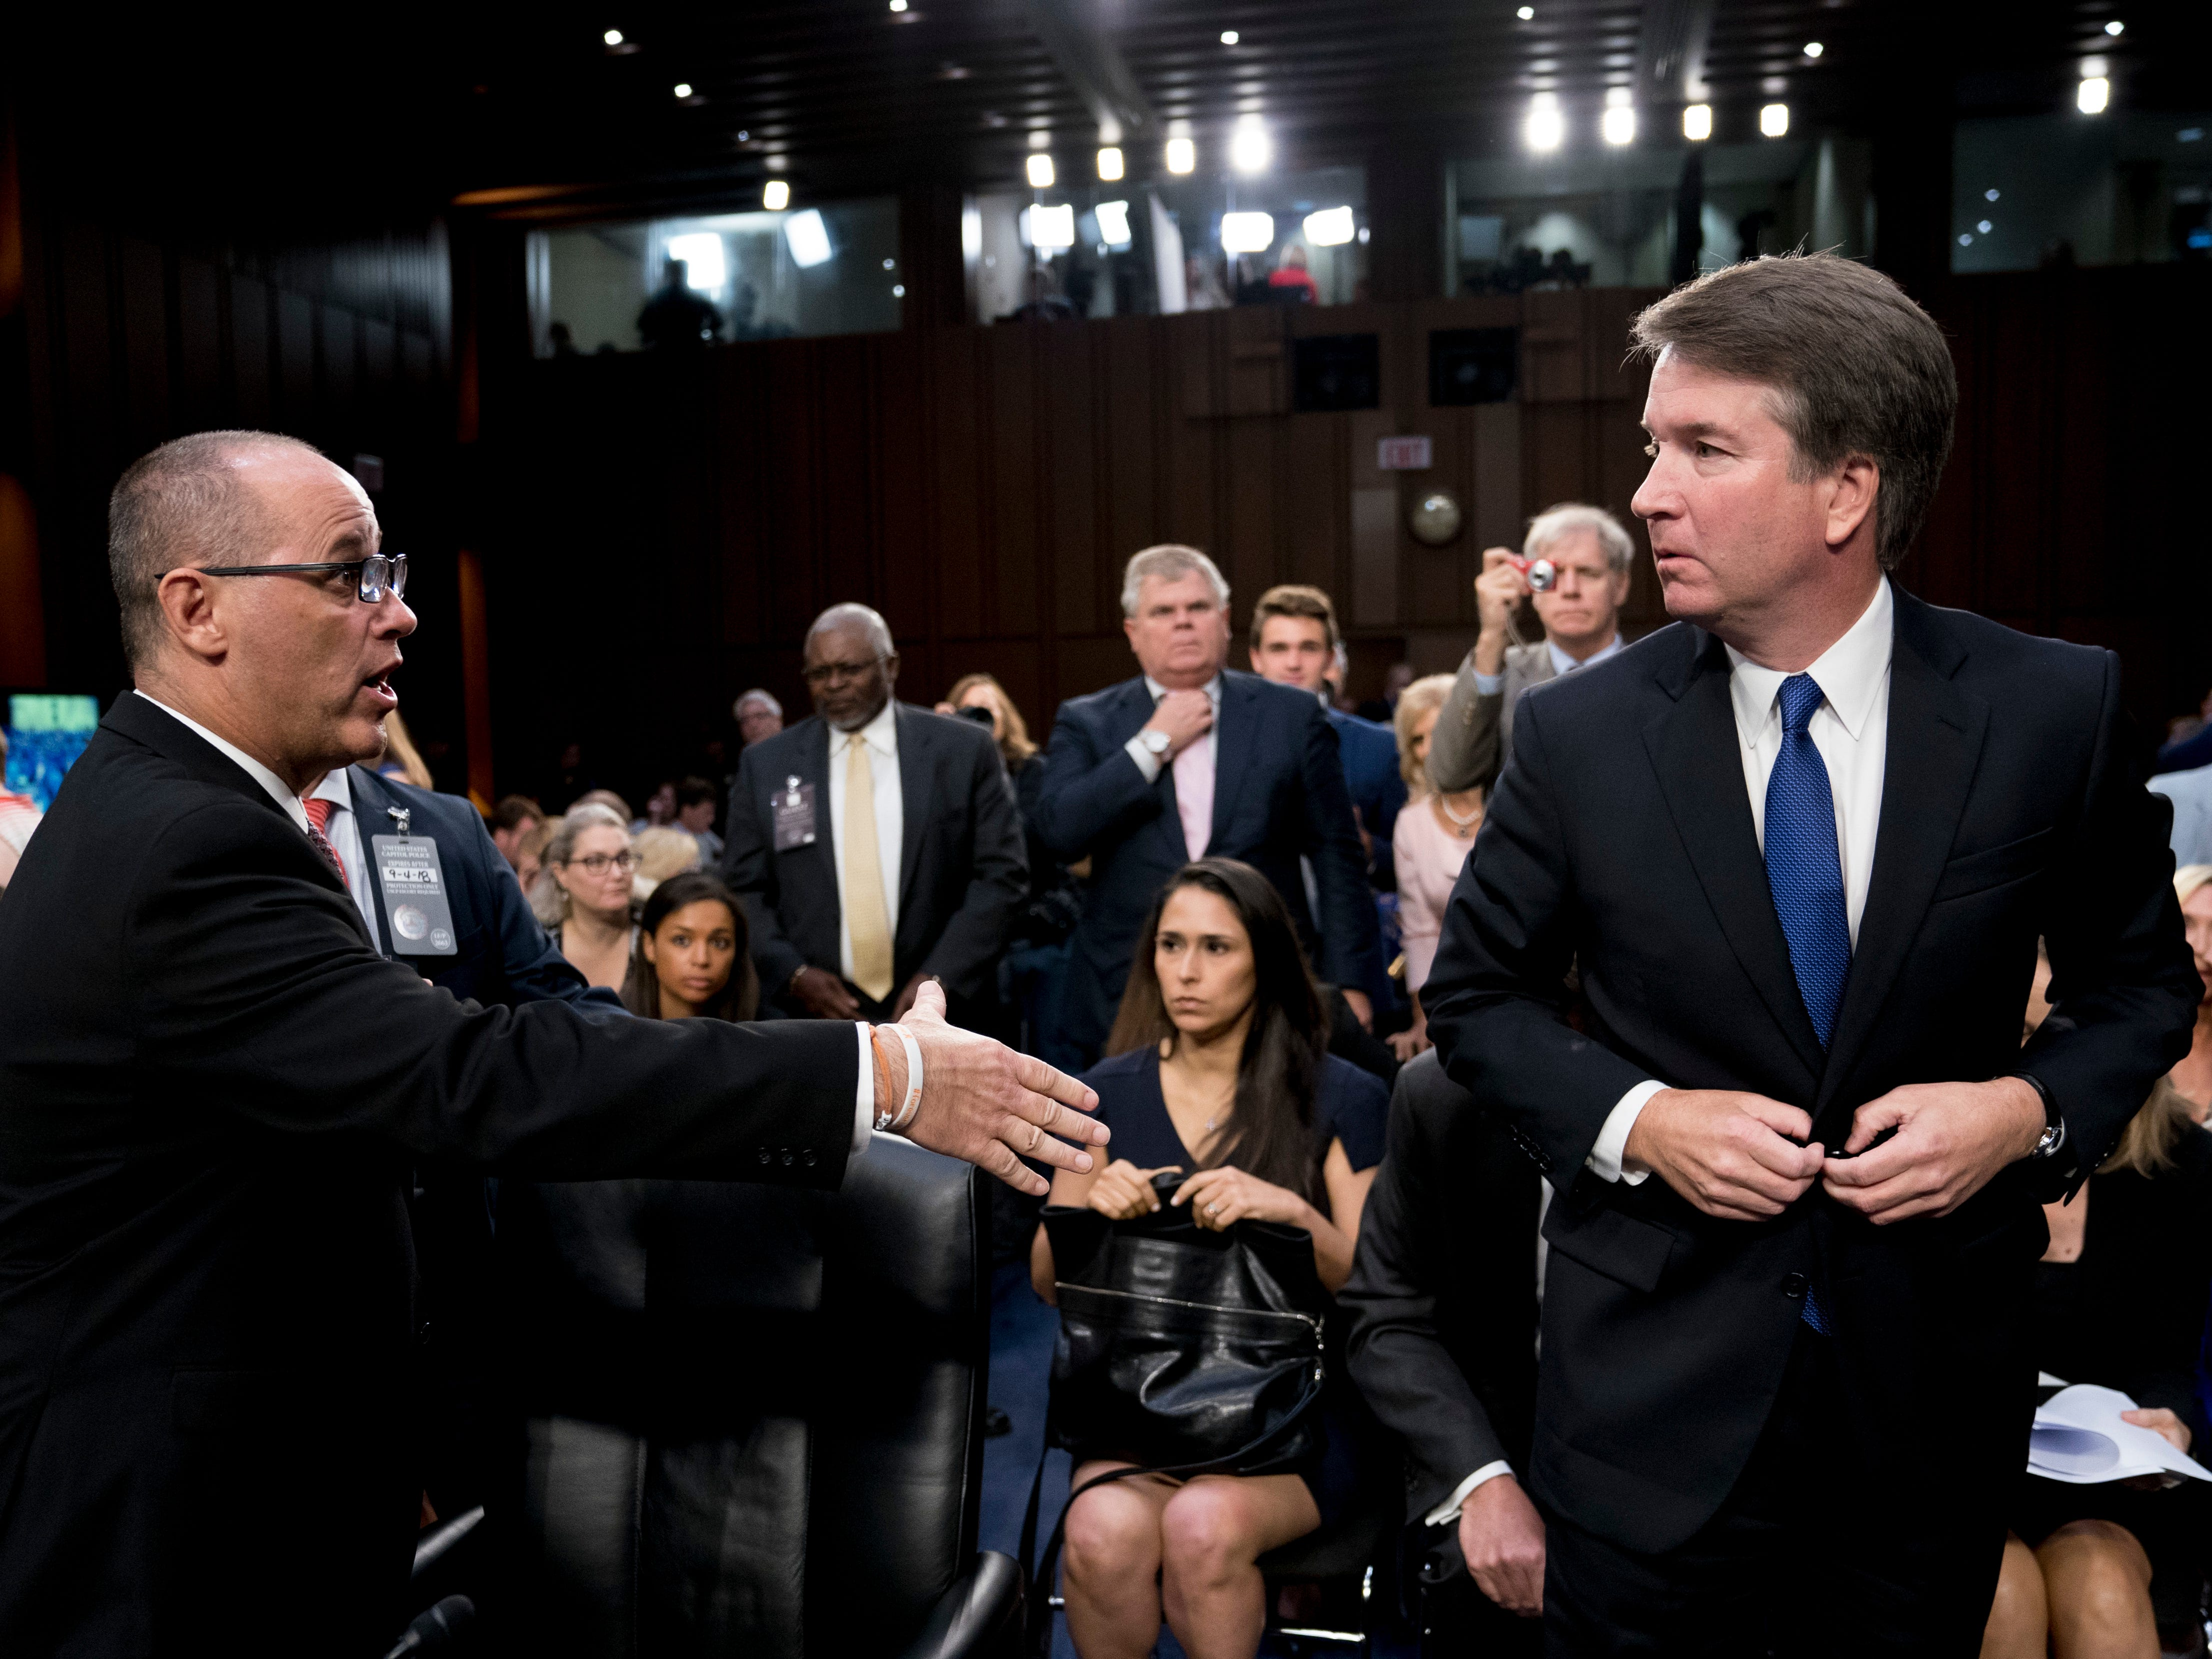 Fred Guttenberg, the father of Jamie Guttenberg who was killed in the Stoneman Douglas High School shooting in Parkland, Fla., left, attempts to shake hands with President Donald Trump's Supreme Court nominee, Brett Kavanaugh, right, as he leaves for a lunch break while appearing before the Senate Judiciary Committee on Capitol Hill in Washington, Tuesday, Sept. 4, 2018, to begin his confirmation to replace retired Justice Anthony Kennedy. Kavanaugh did not shake his hand. (AP Photo/Andrew Harnik) ORG XMIT: DCAH244